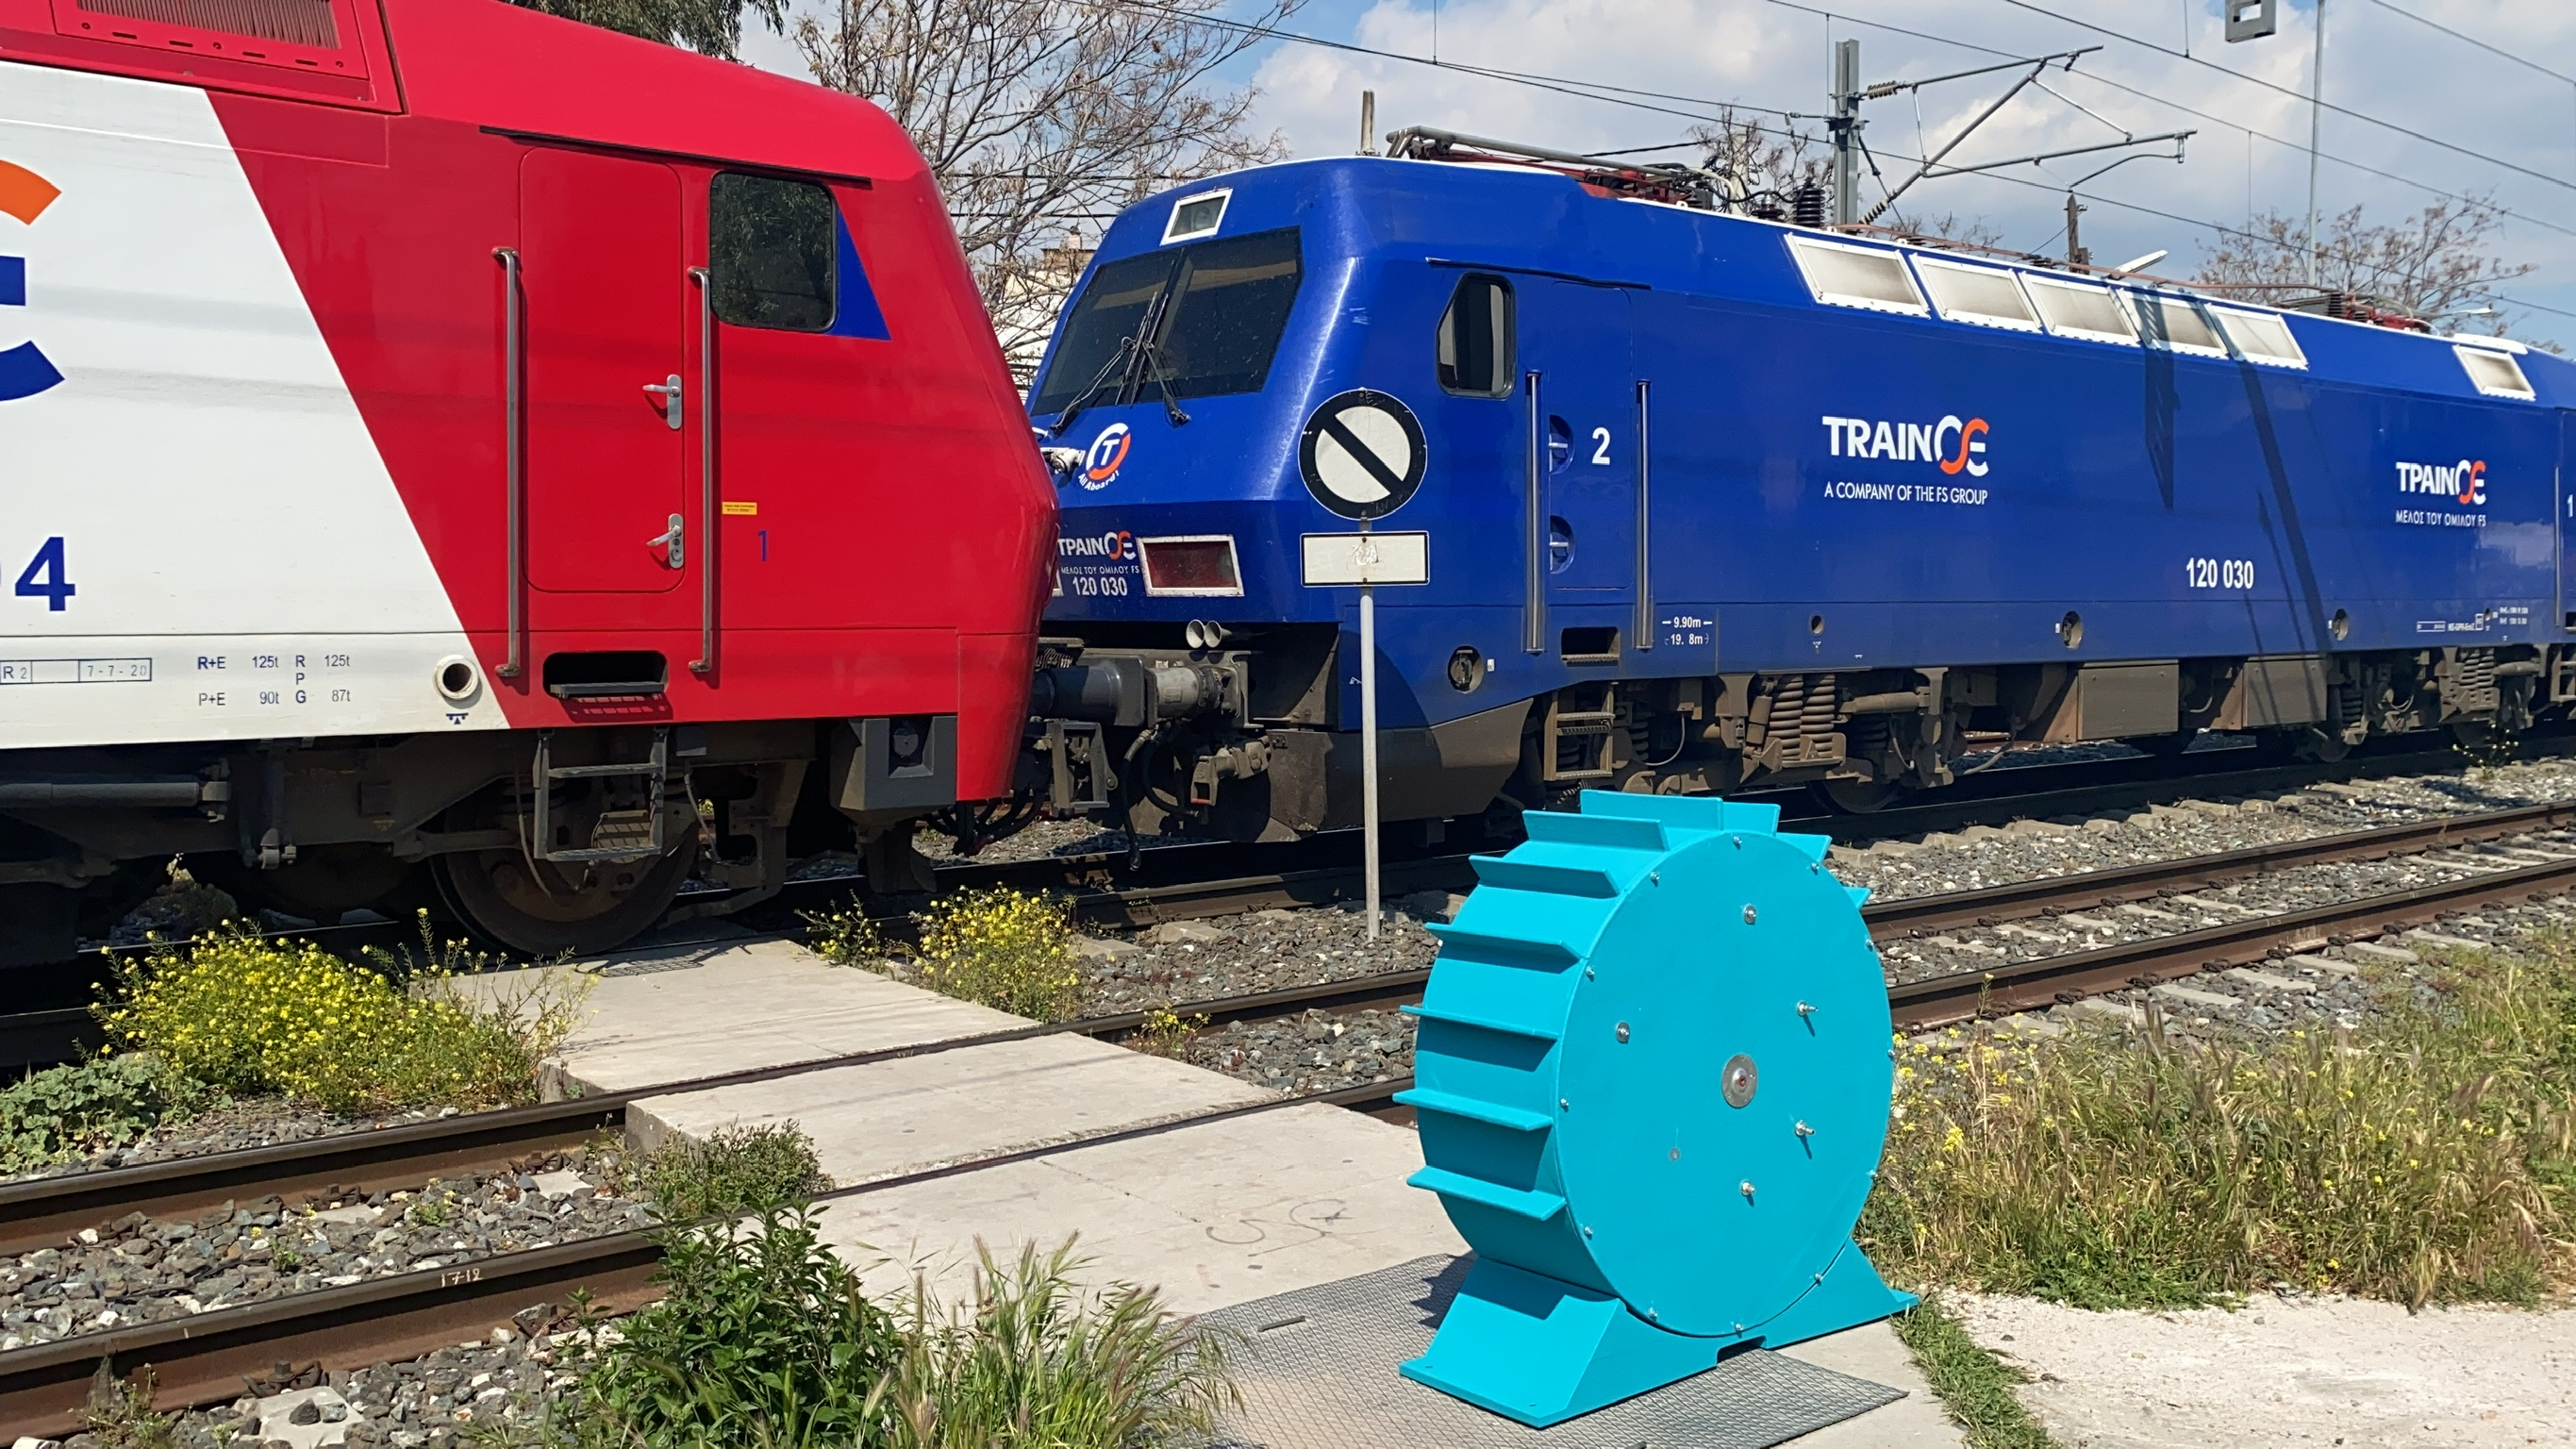 A render of a blue flywheel has been added to this photo of two trams..